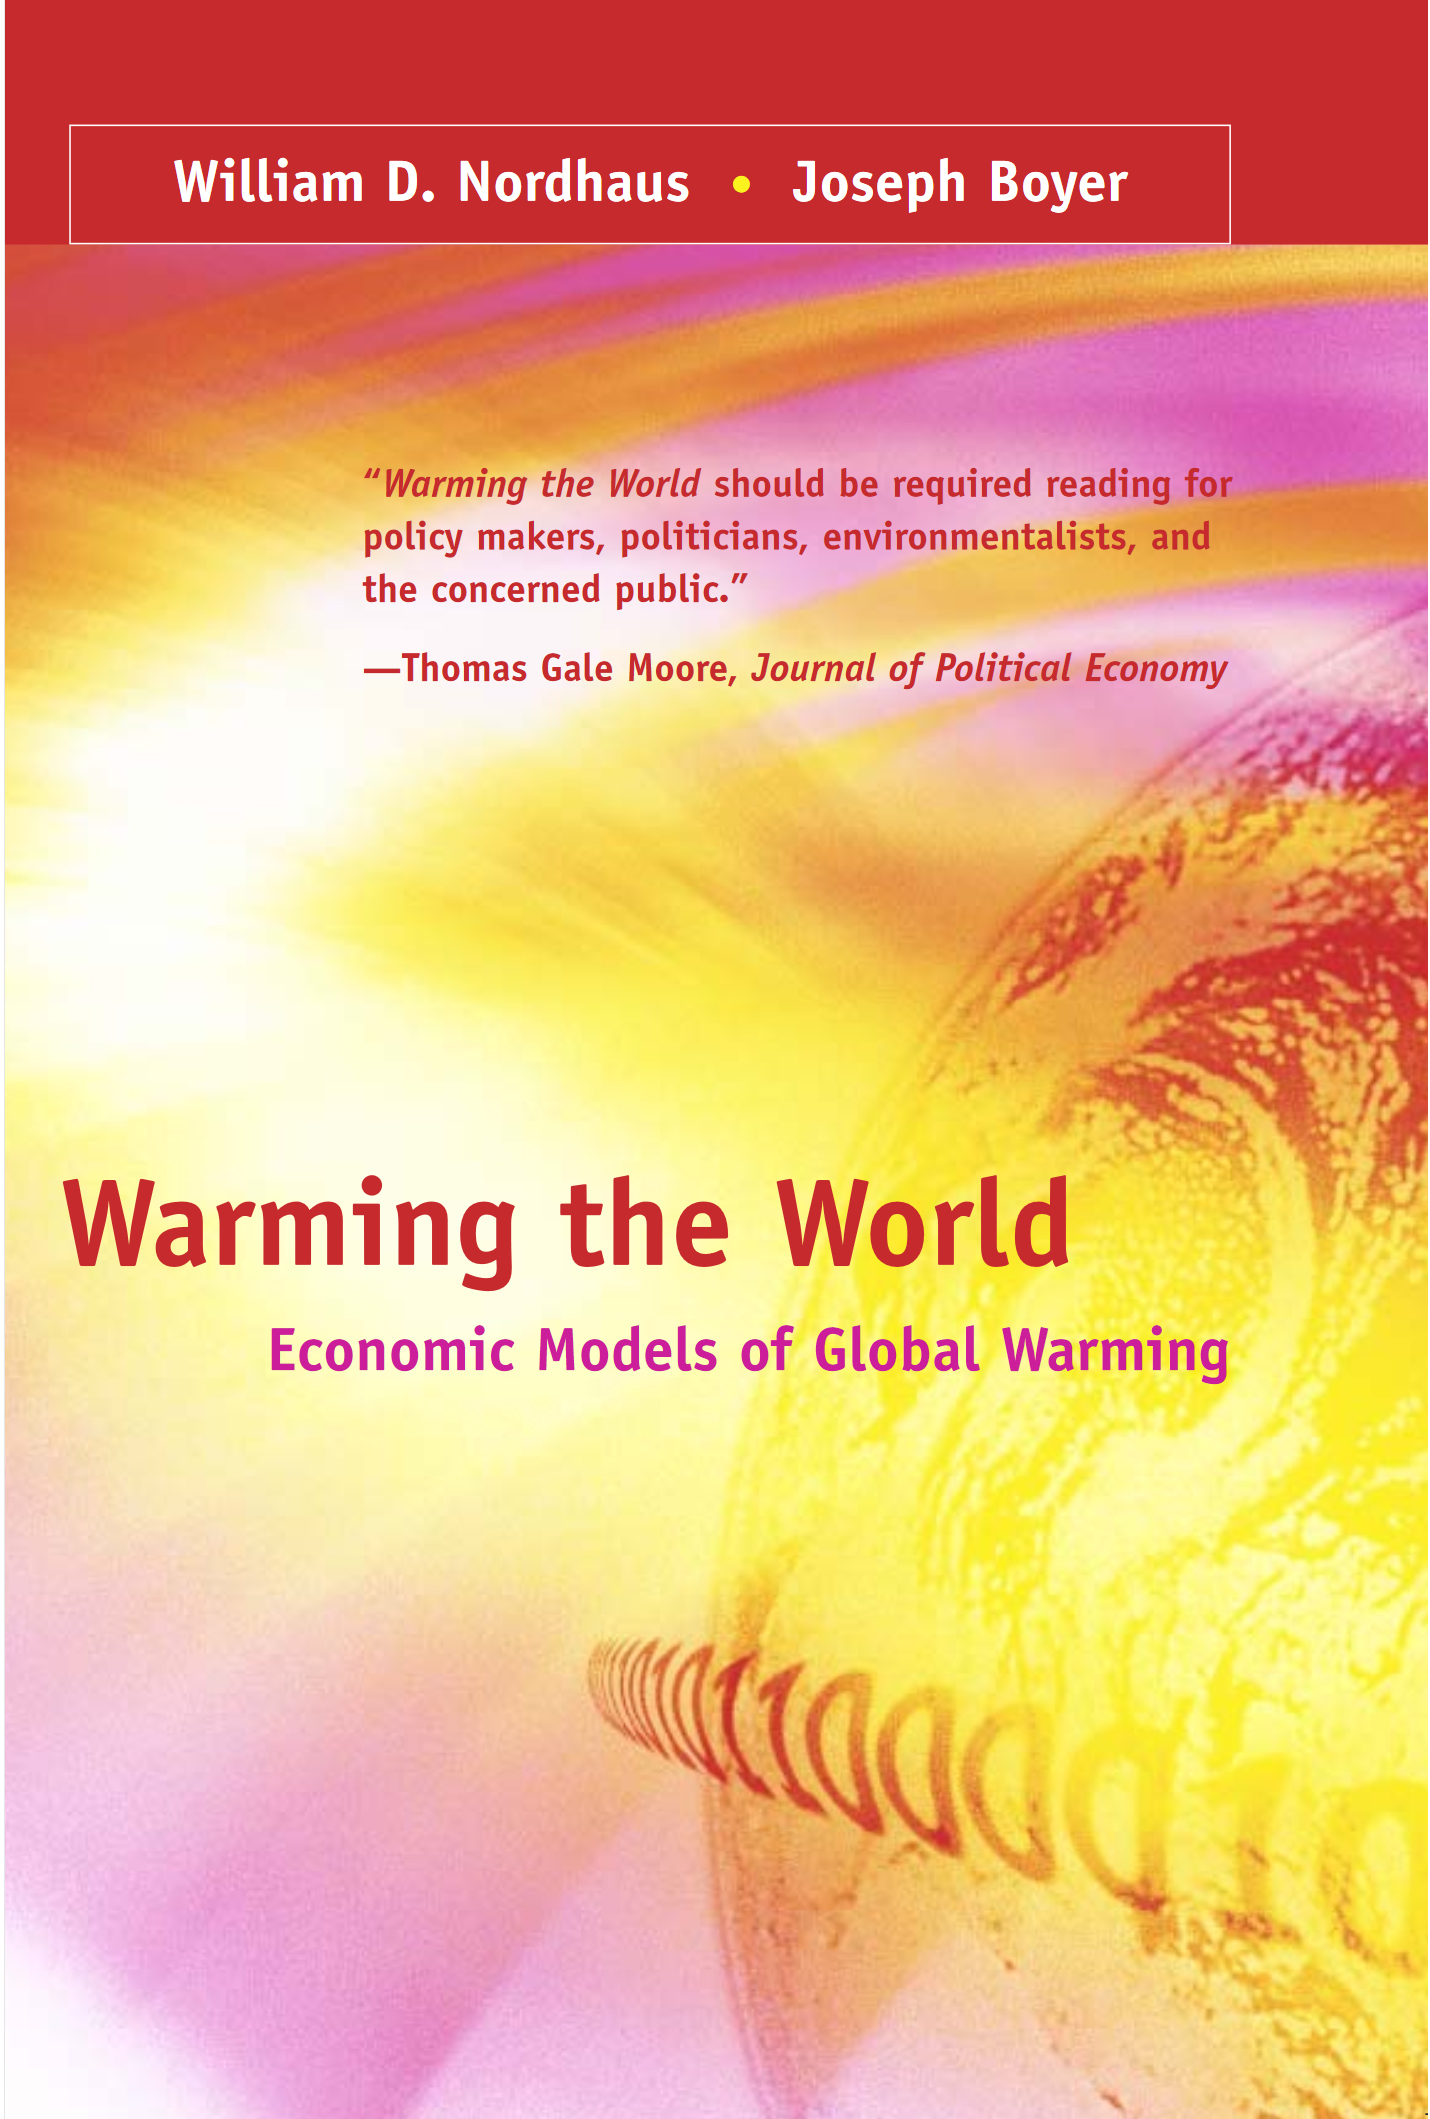 19. Warming the world economic models of global warming